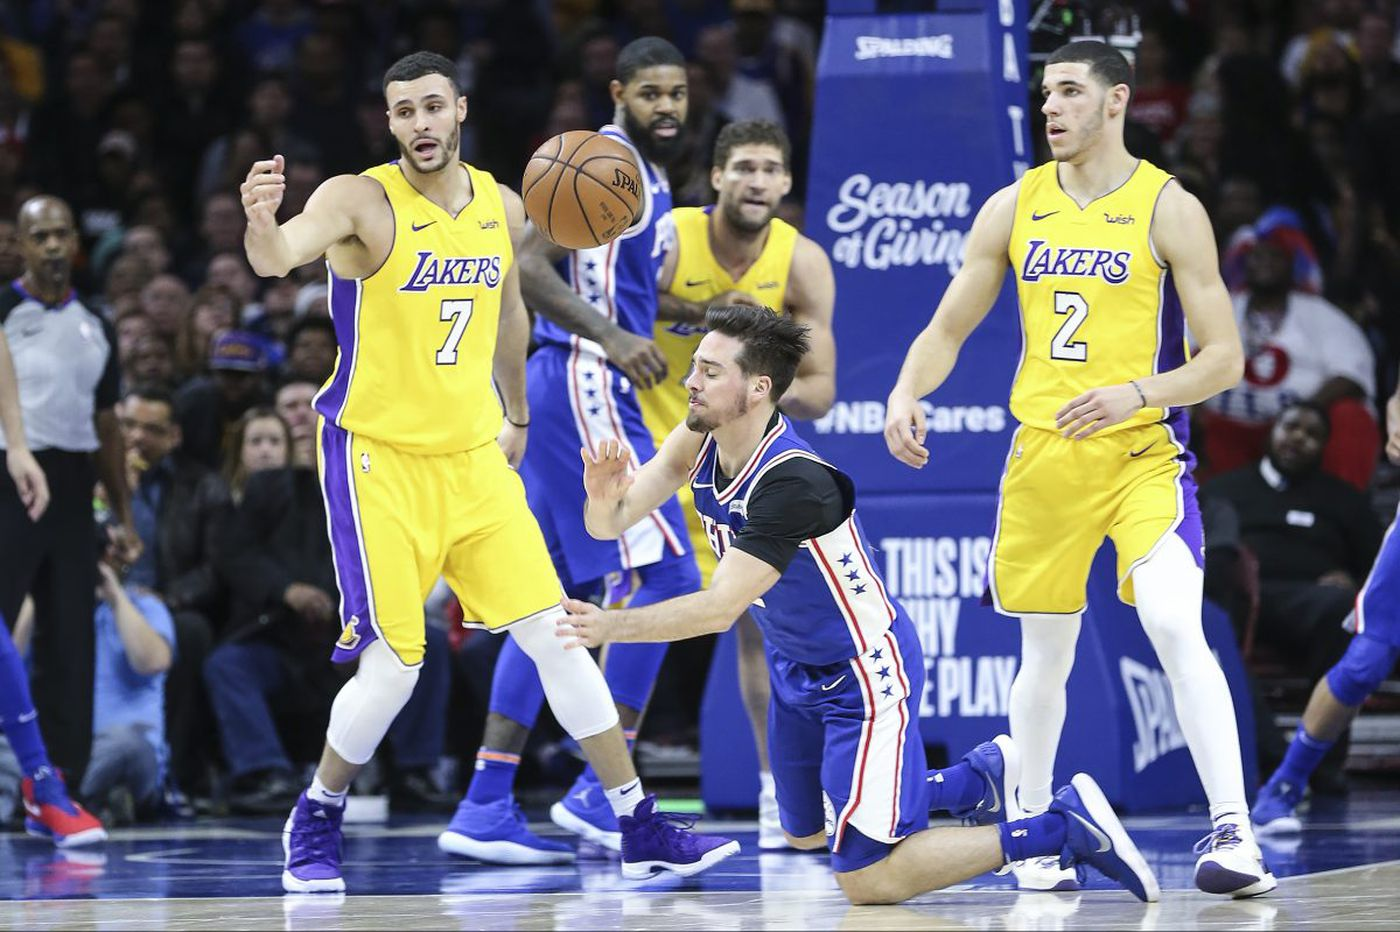 Sixers-Lakers observations, 'best' and 'worst' awards: Joel Embiid, Brandon Ingram, Richaun Holmes, patchy defense